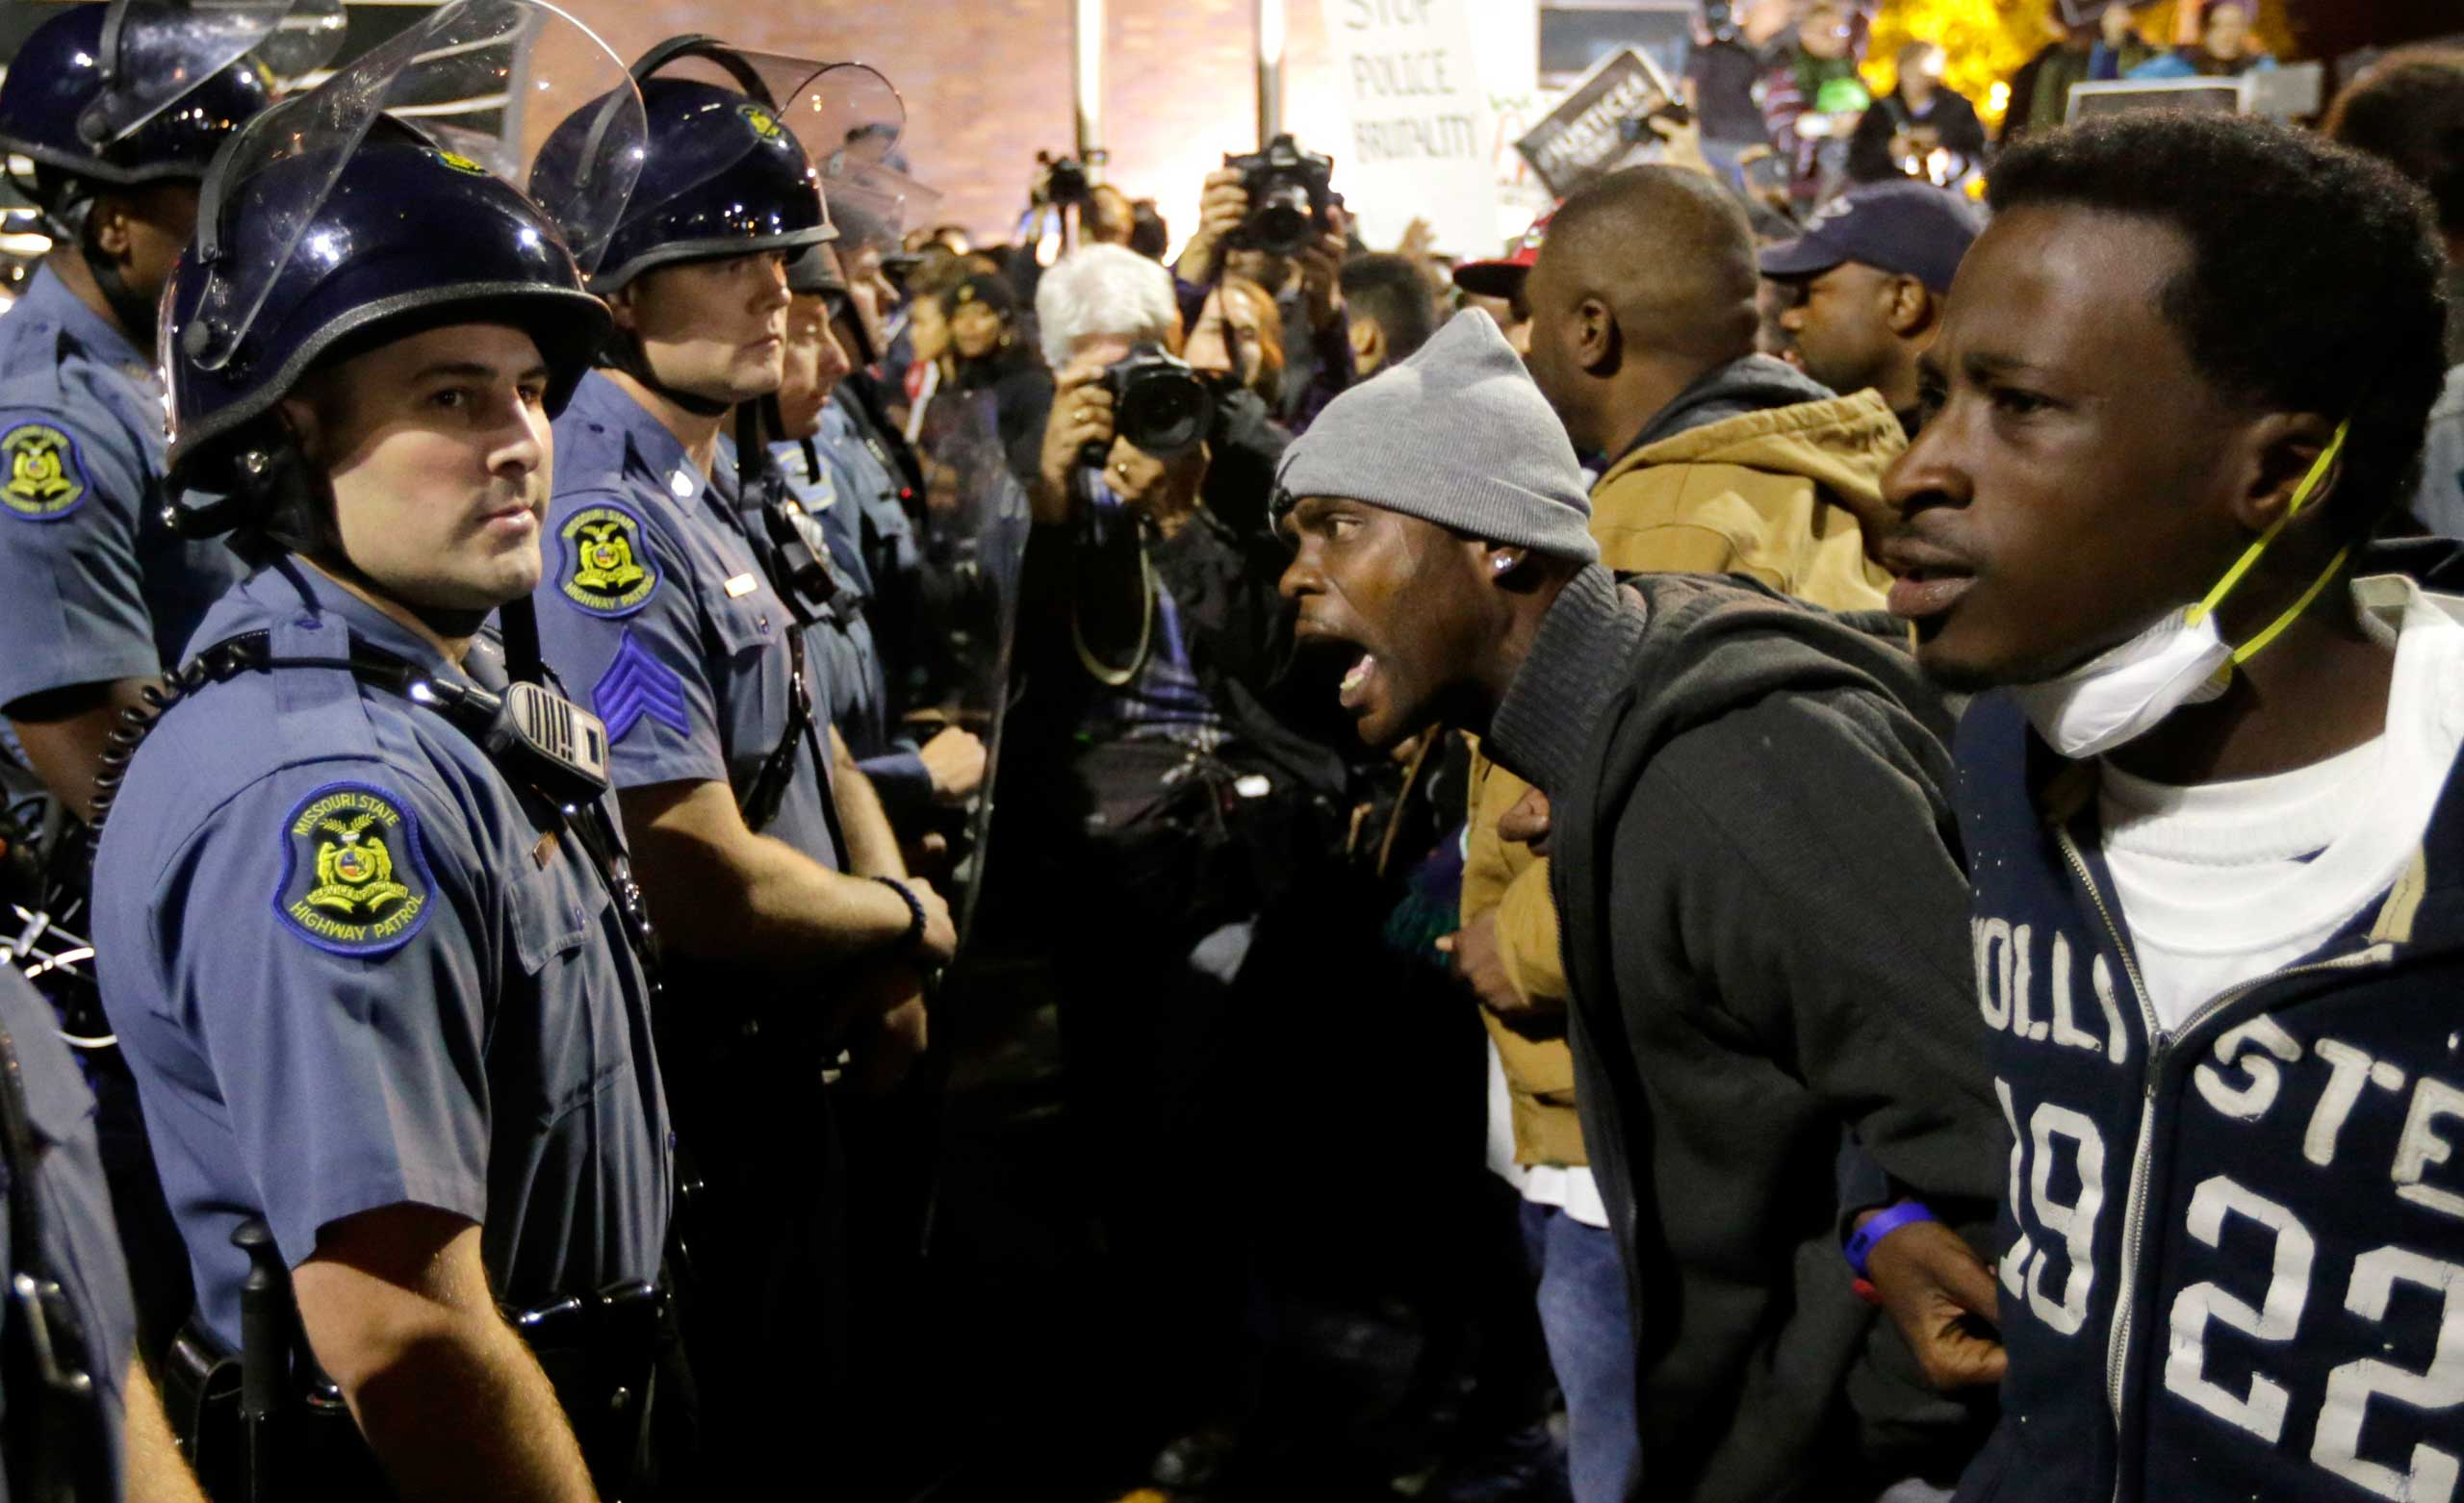 A protester yells at a Missouri State Police officer during a protest at the Ferguson Police Department in Ferguson, Mo. on Oct. 10, 2014.